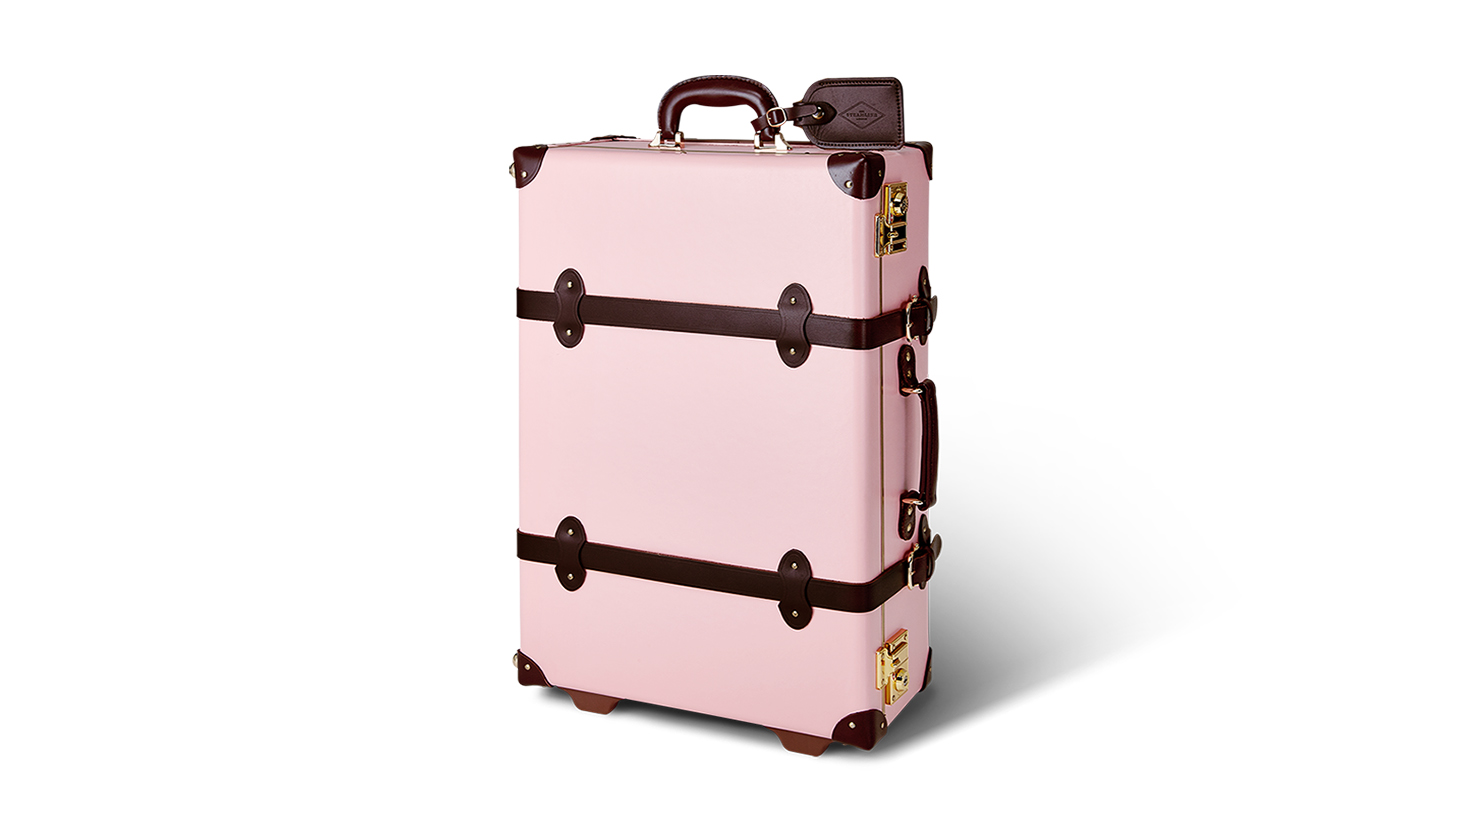 hers vday gifts steamline luggage